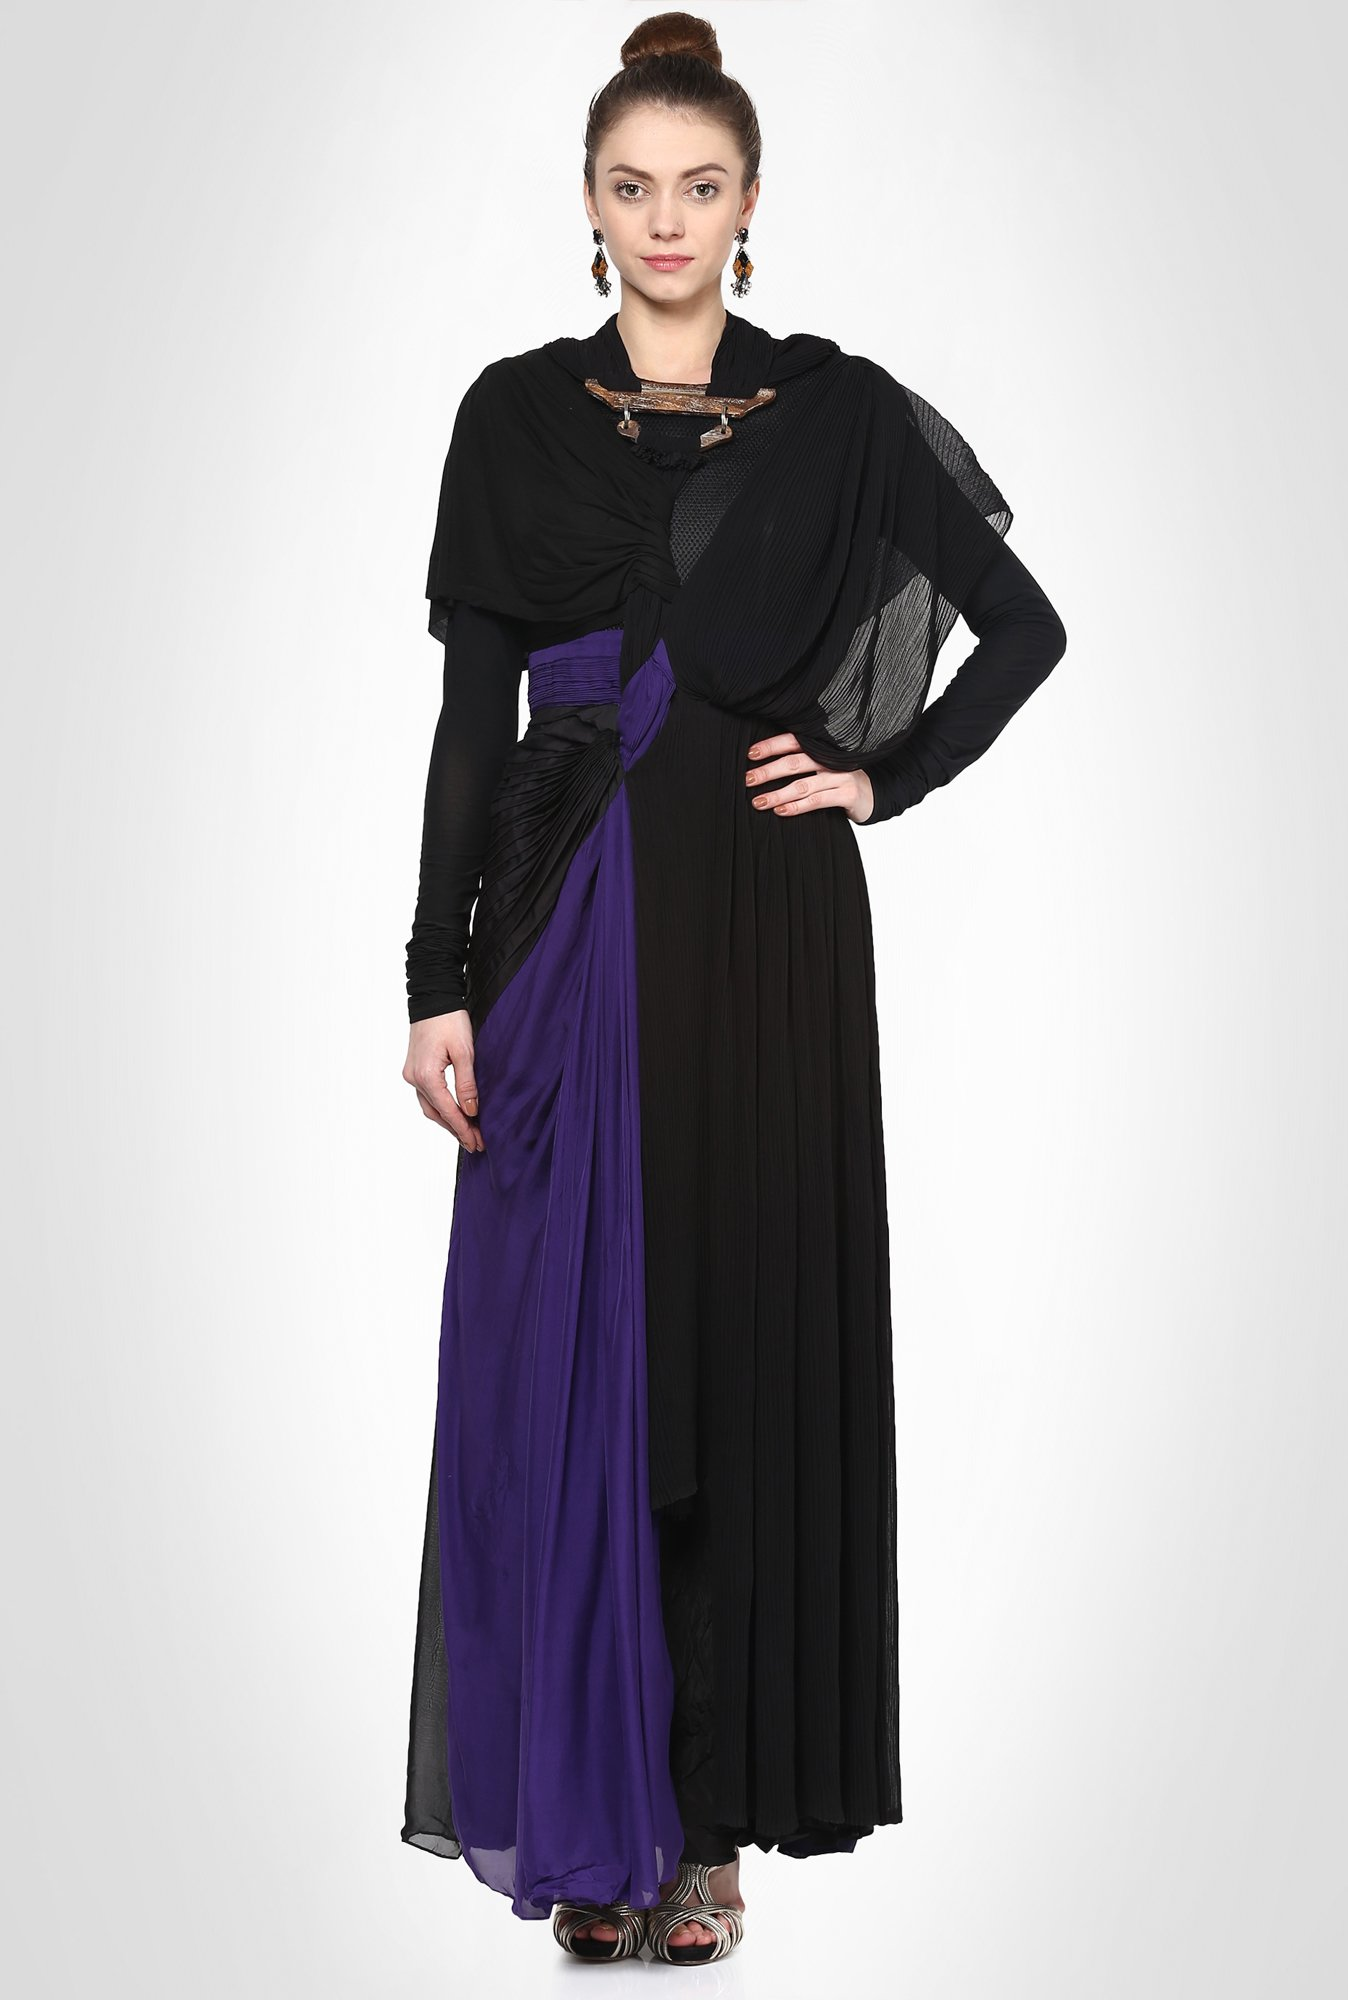 Alpana Neeraj Designer Wear Black Maxi Dress by Kimaya